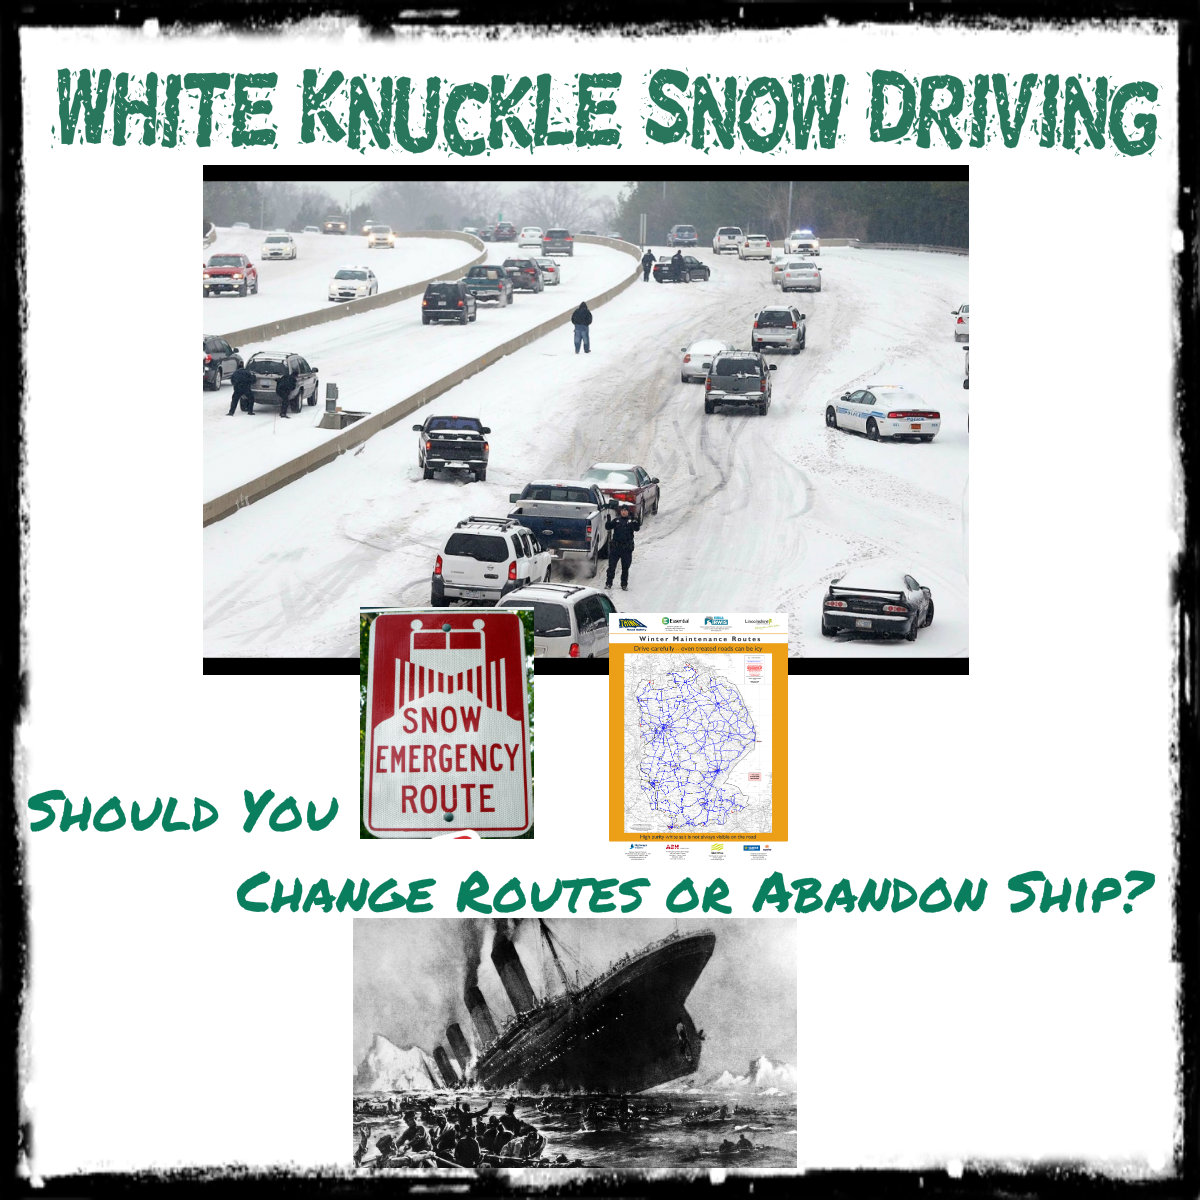 White Knuckle Snow Driving: Plus 6 Tips if you need a Tow